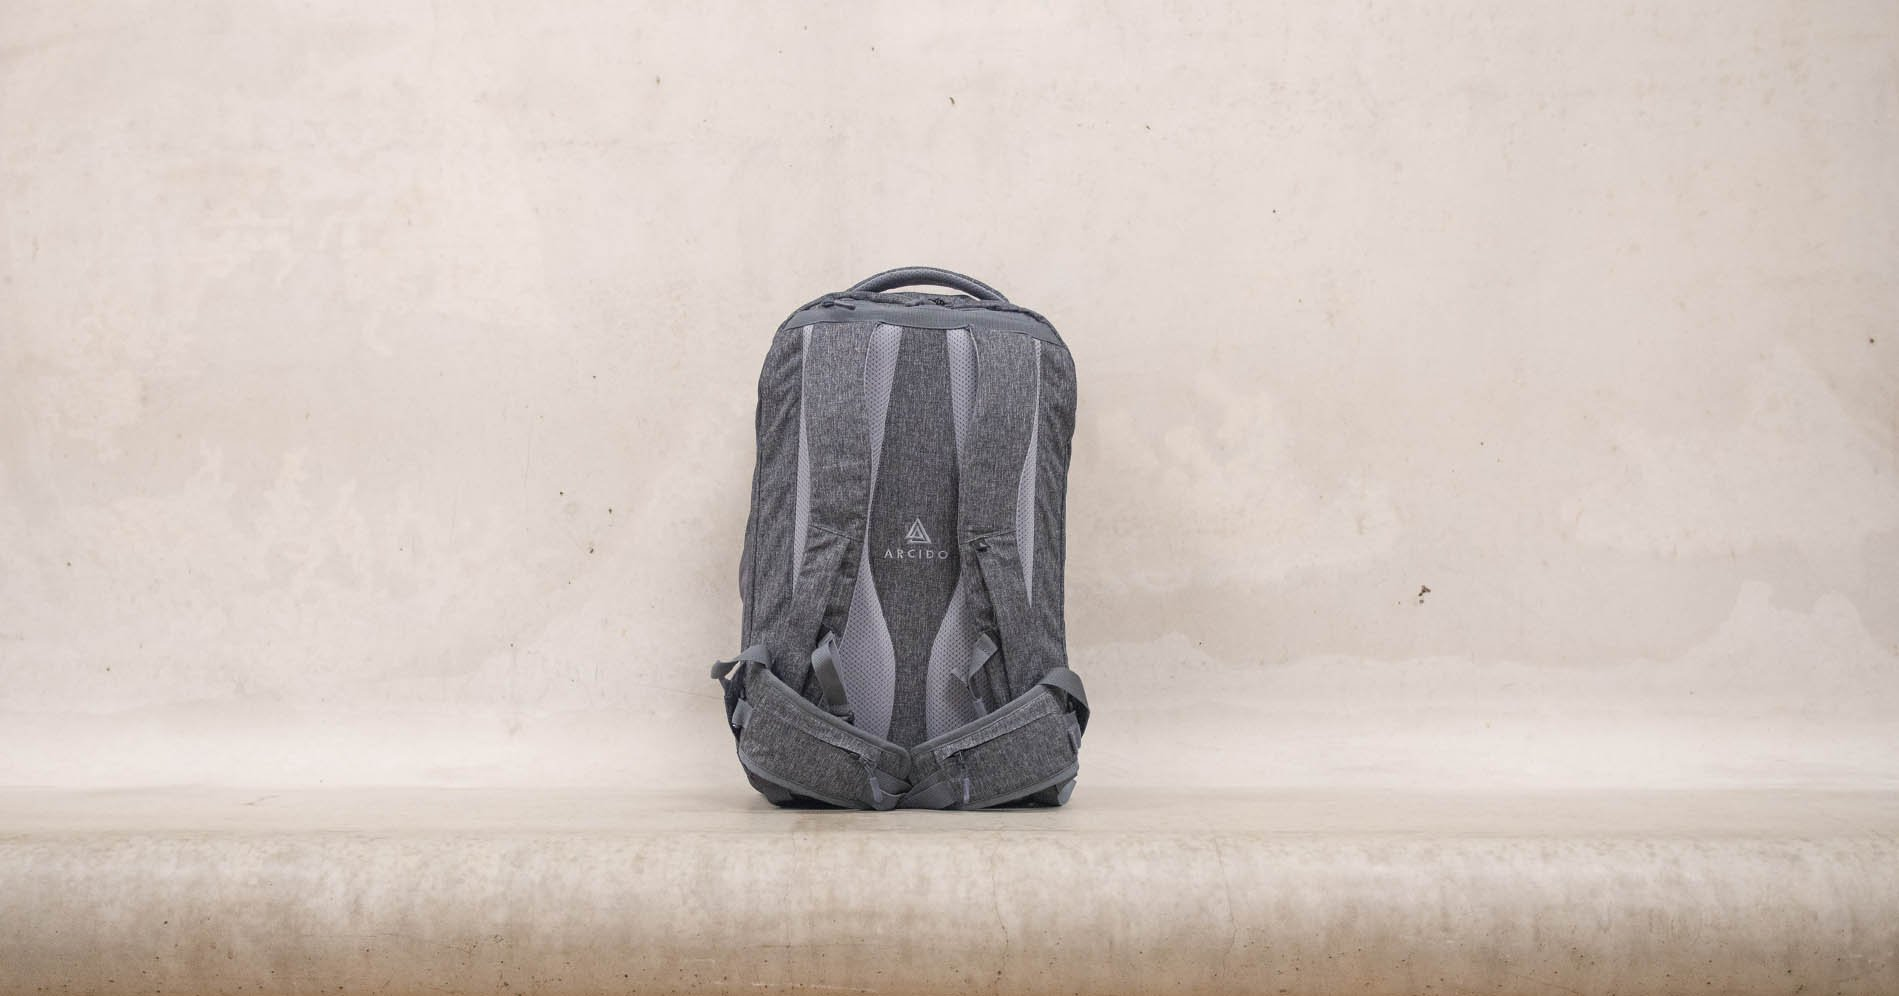 Less is more. Arcido backpacks encourage travelers to pack less and has created a design that's both practical and minimalistic.